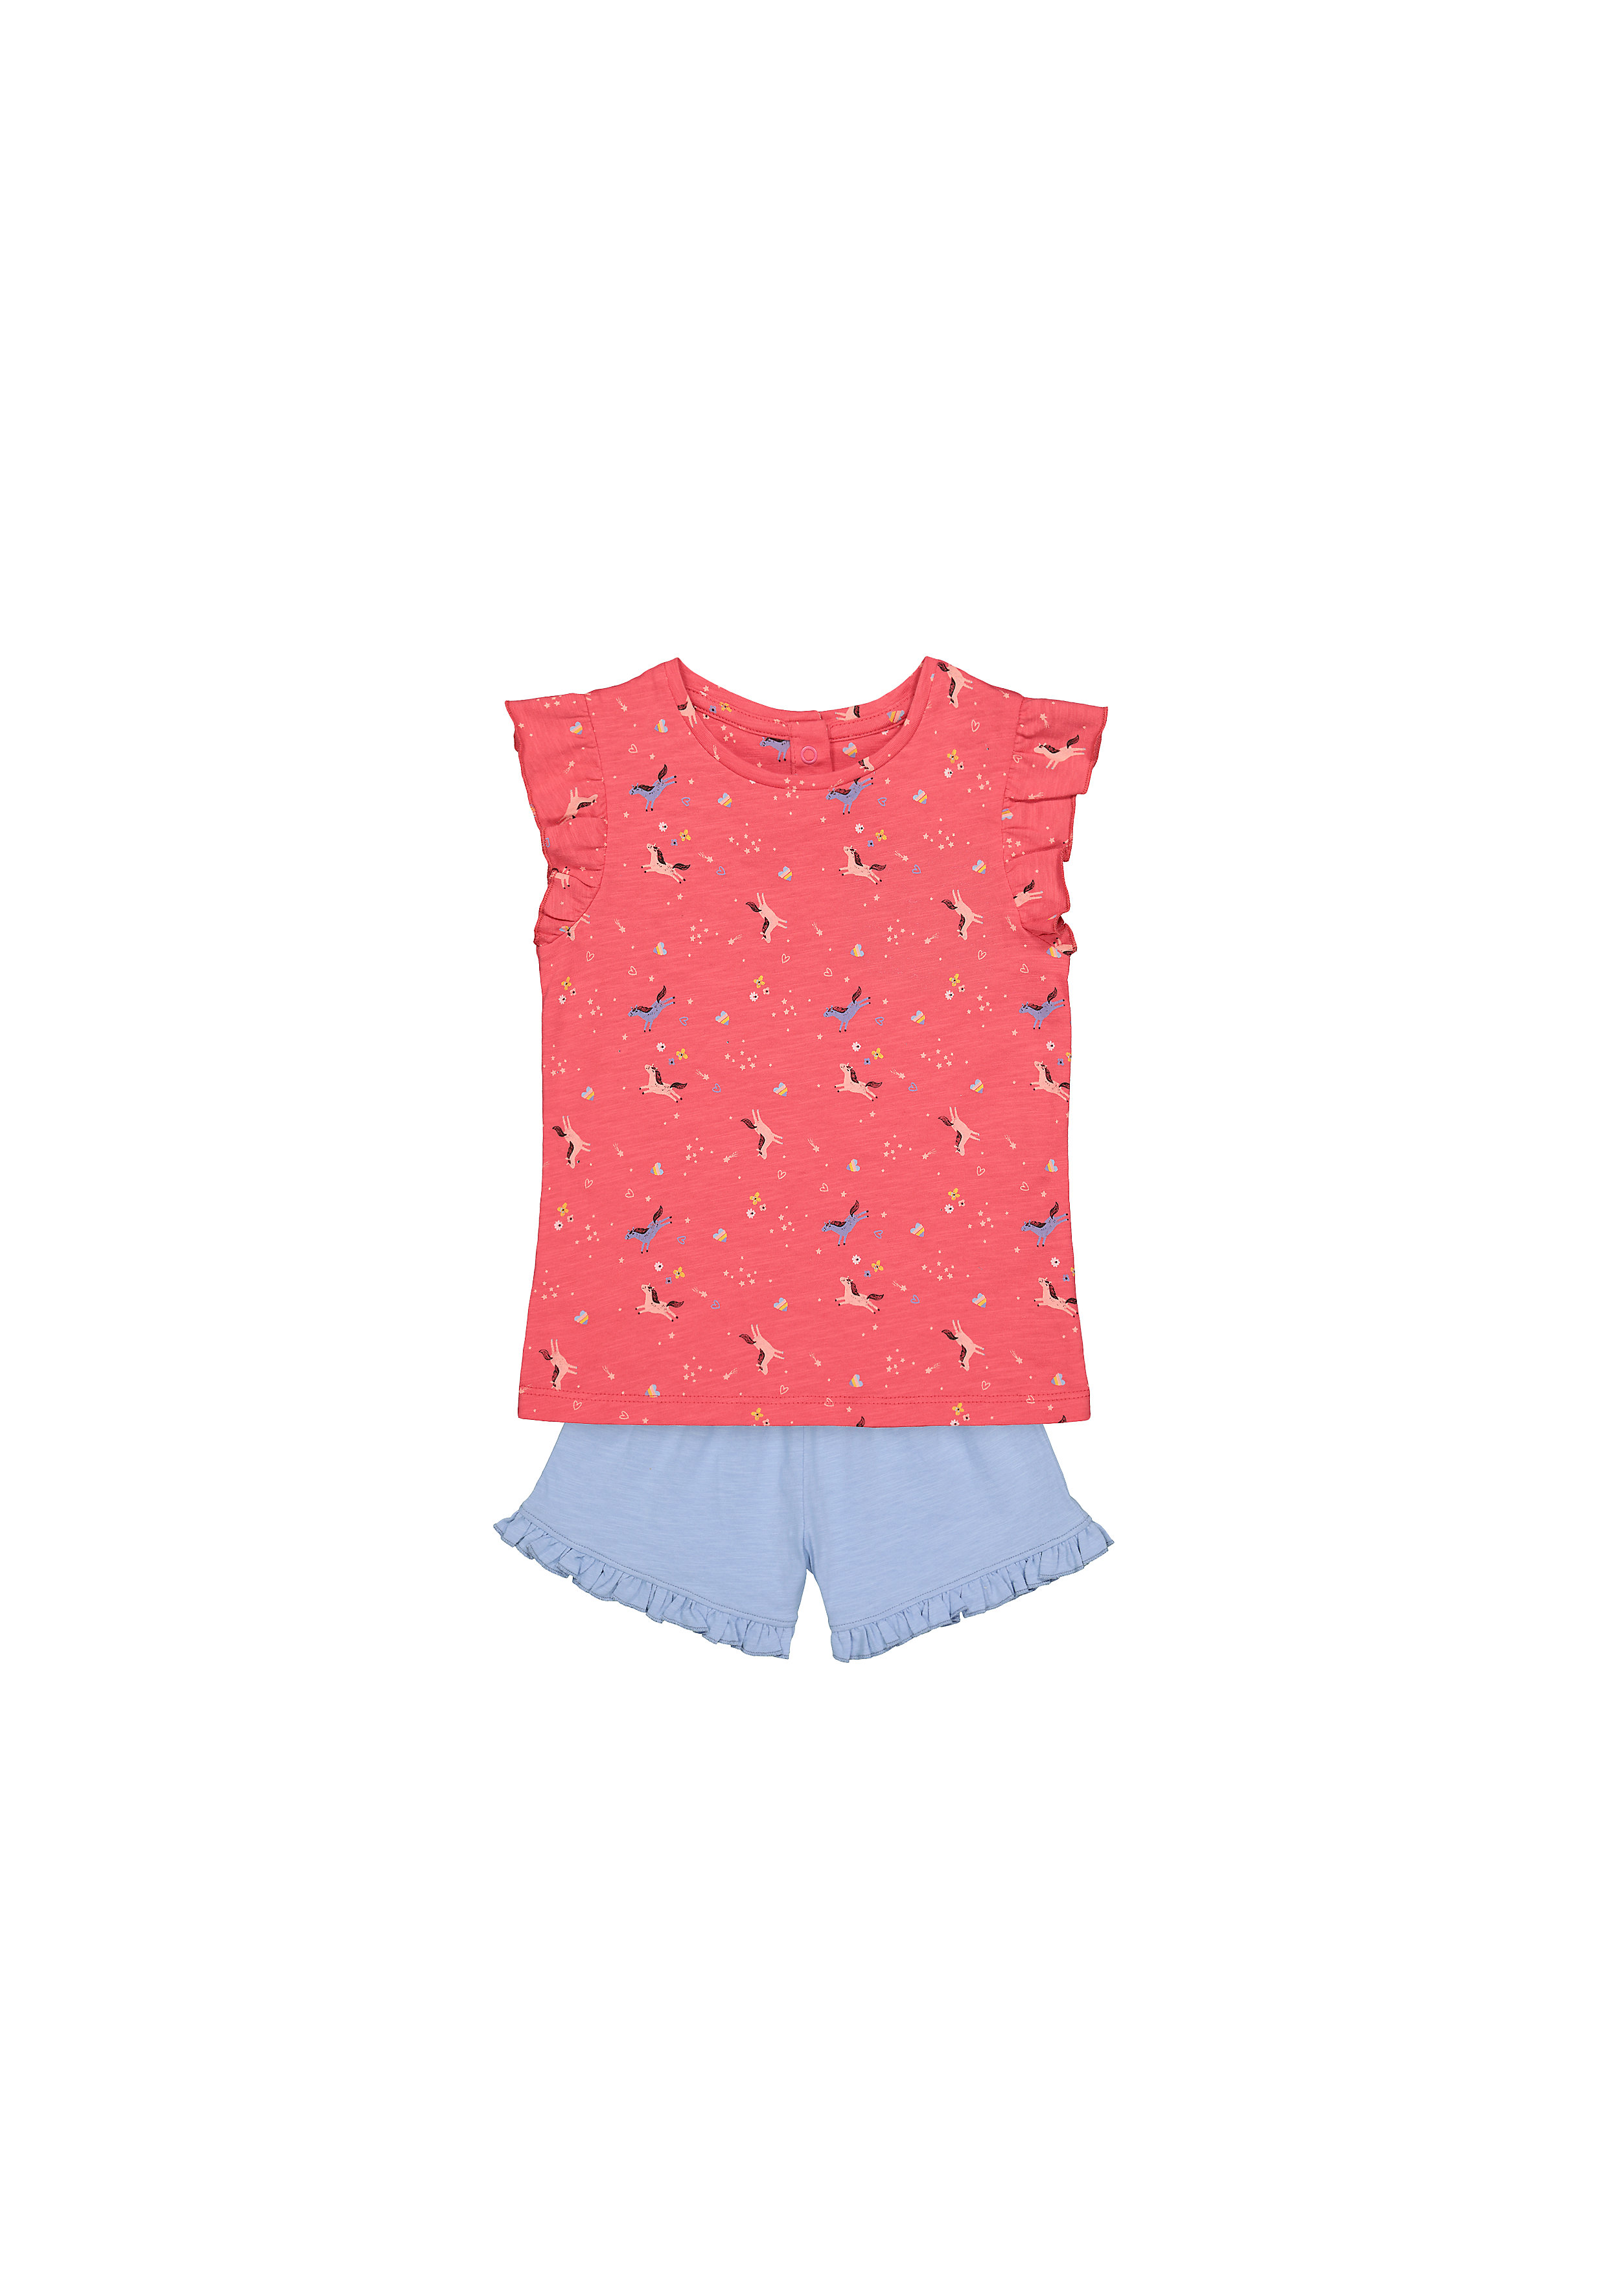 Mothercare | Girls Half Sleeves Shorts Sets  - Pack Of 2 - Pink